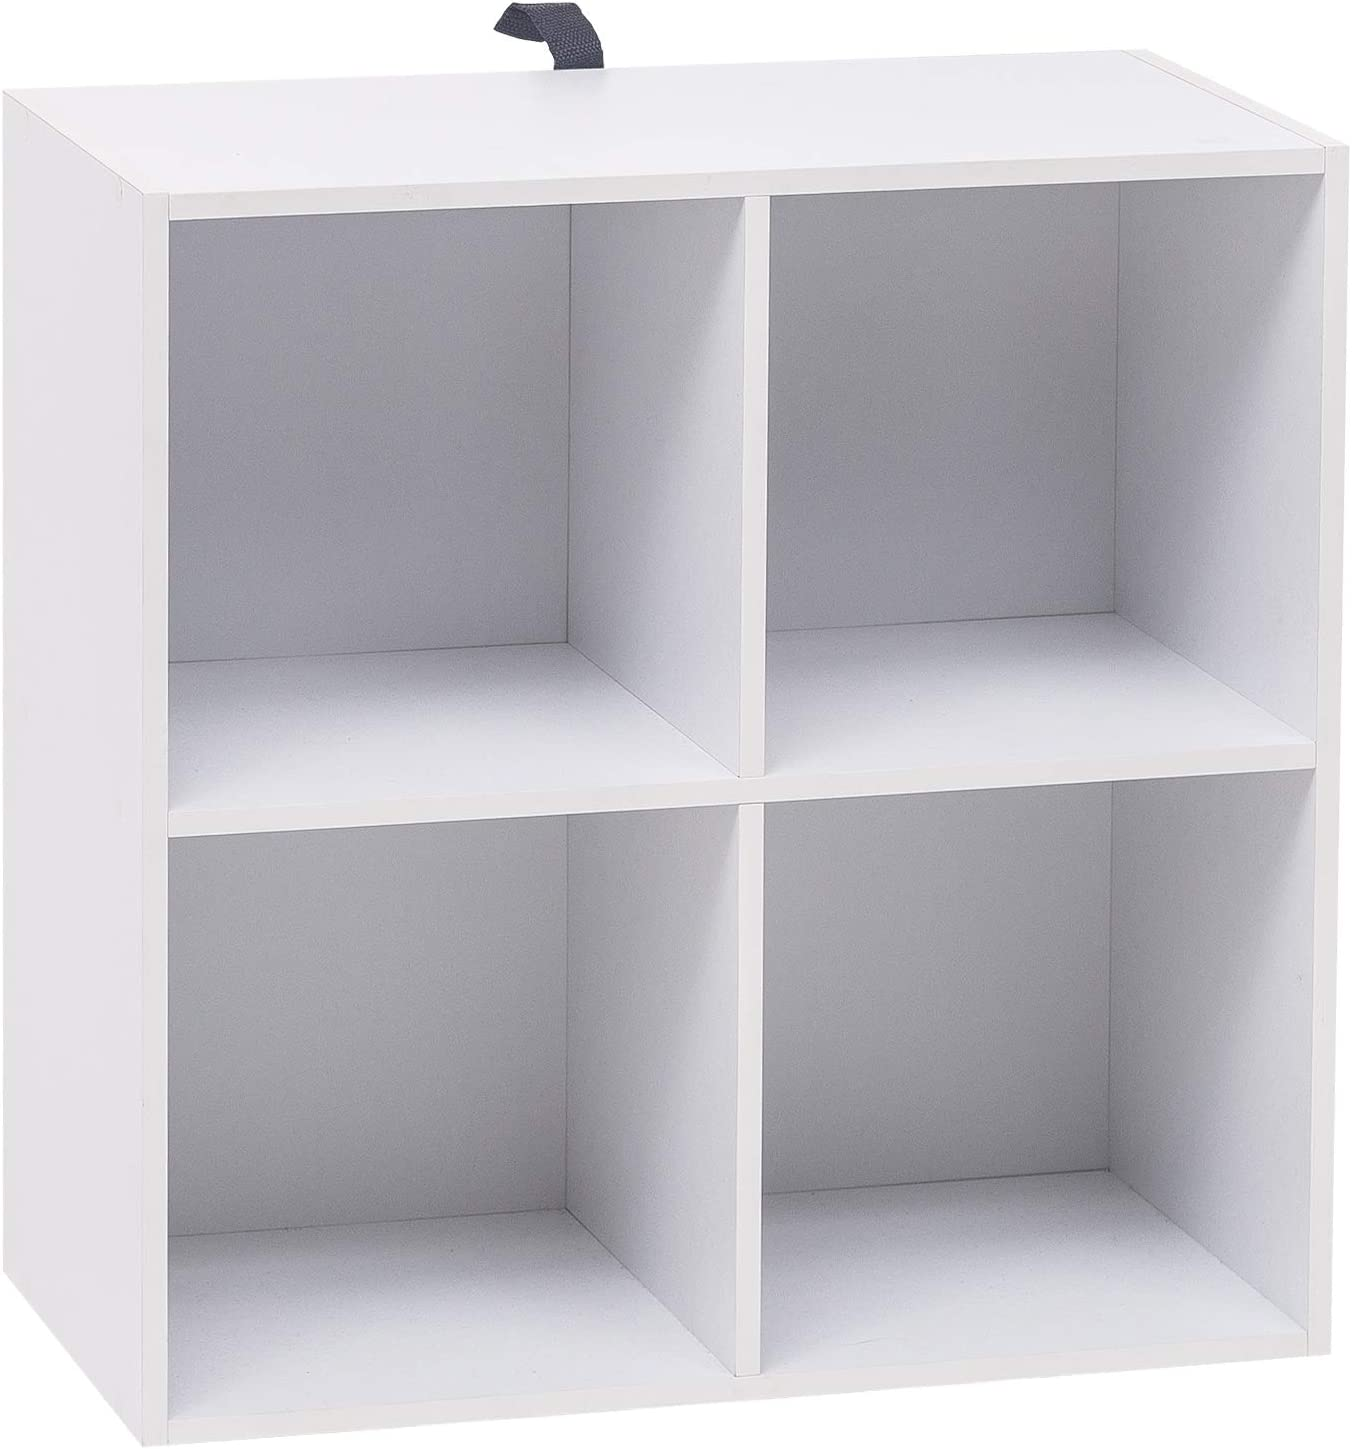 WOLTU Bookcase,White Bookshelf 4 Storage Cubes Shelves Units, Wooden Cube Units Bookcases for Bedroom,Living Room,Kids Room